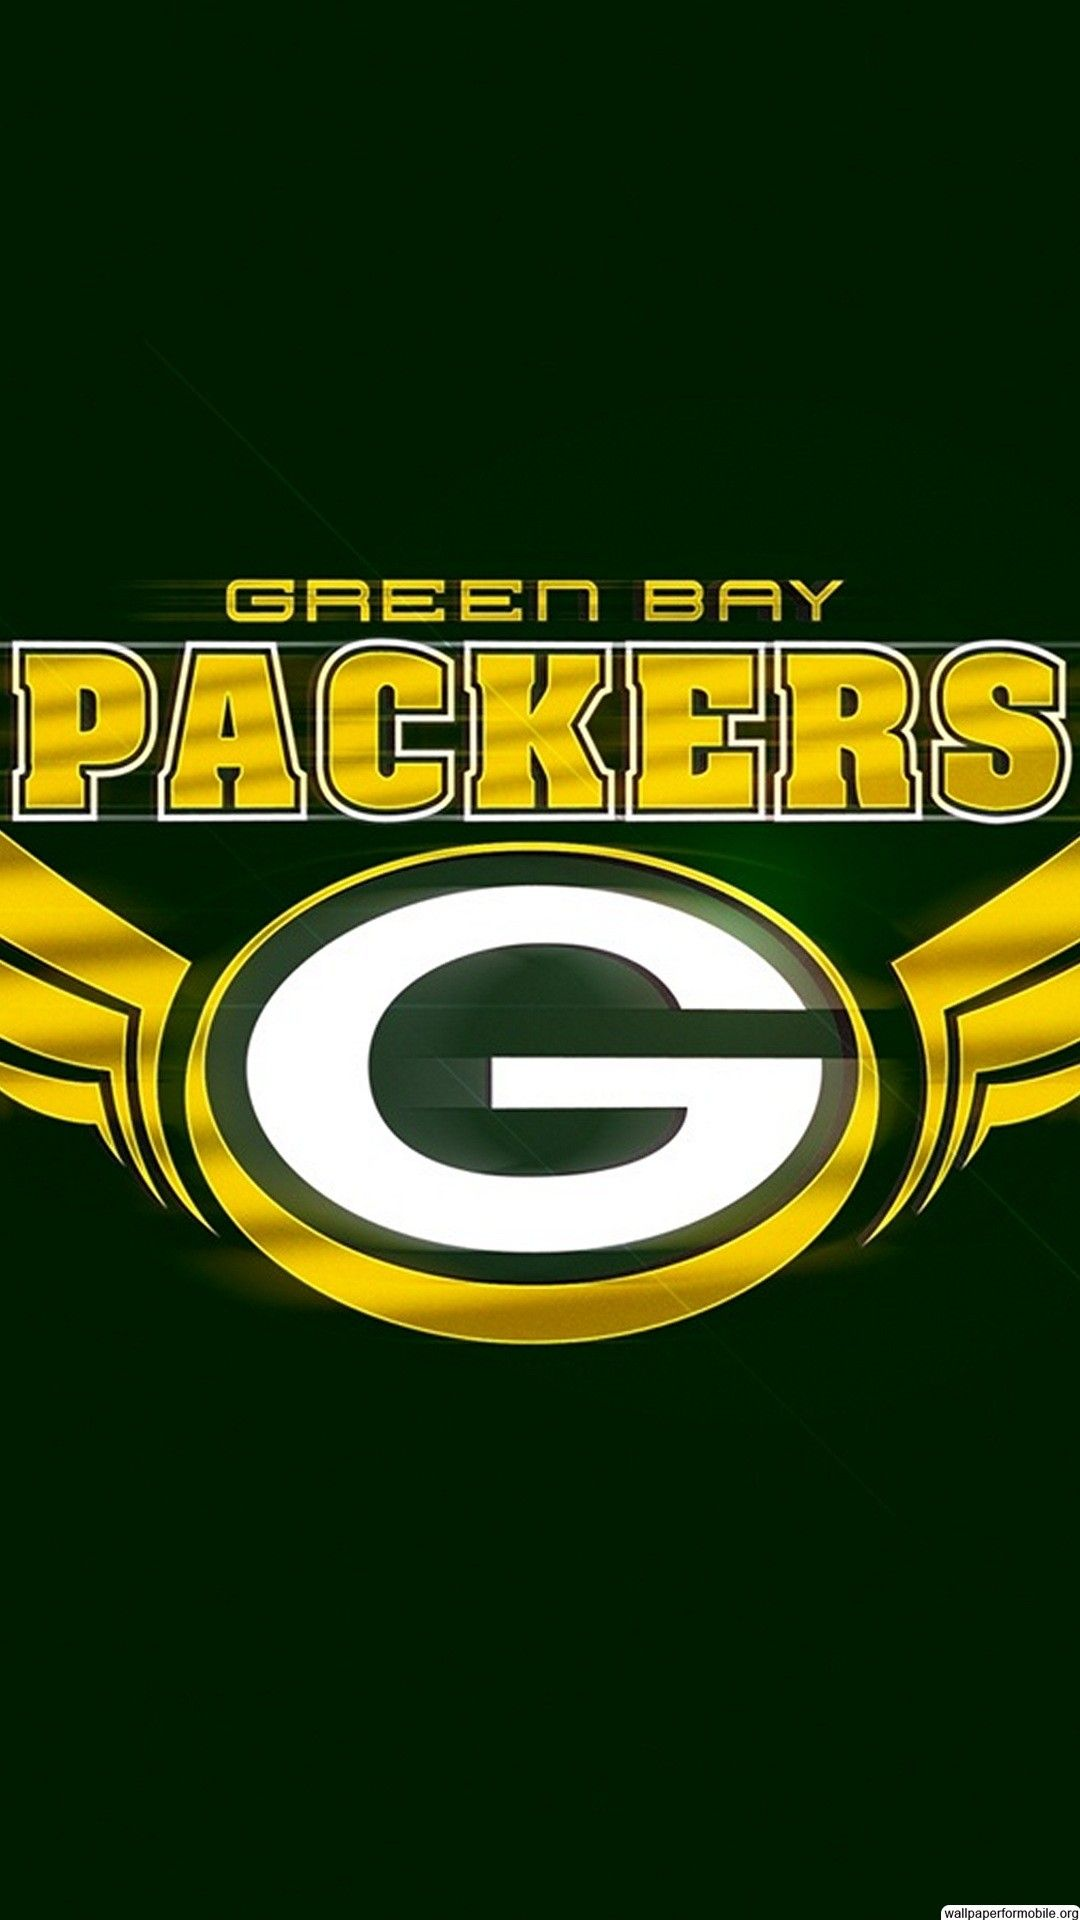 Aaron Rodgers Green Bay Packers Wallpaper Games Wallpapers Ideas